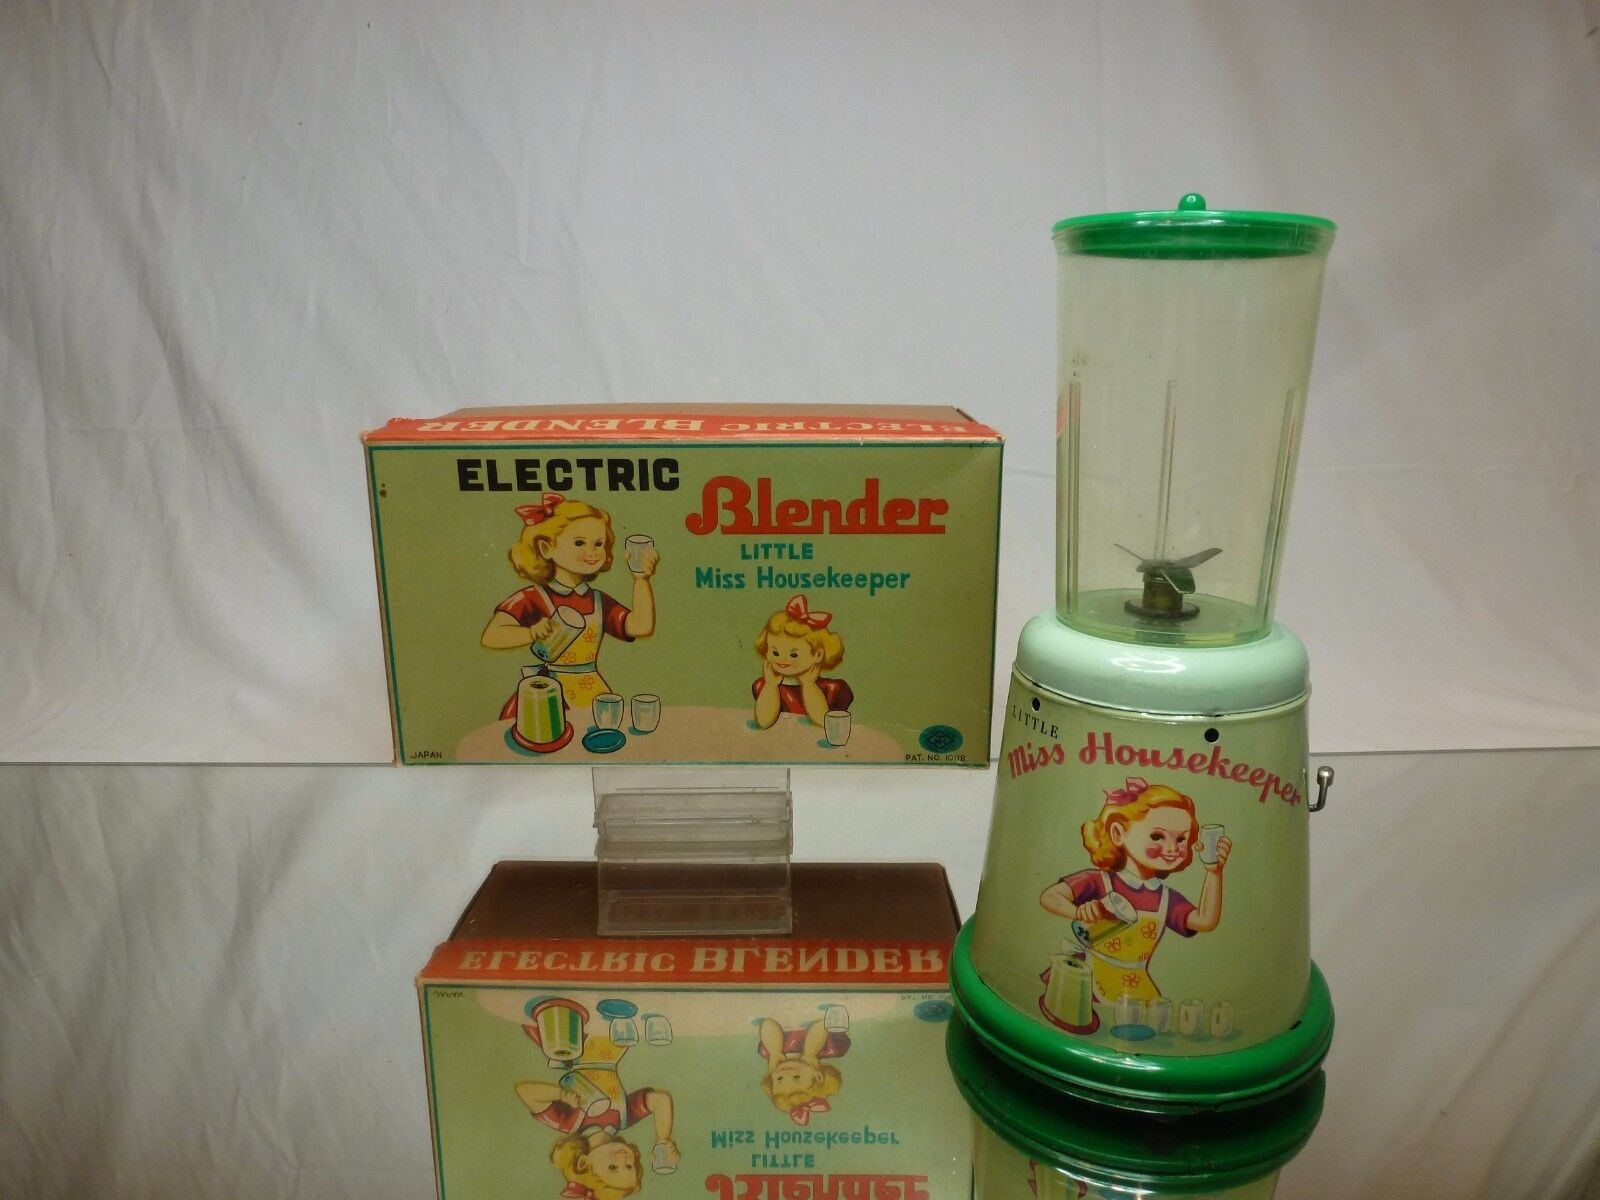 TM TIN TOY ELECTRIC BLENDER - LITTLE MISS HOUSEKEEPER - Verde RARE - GOOD IN BOX